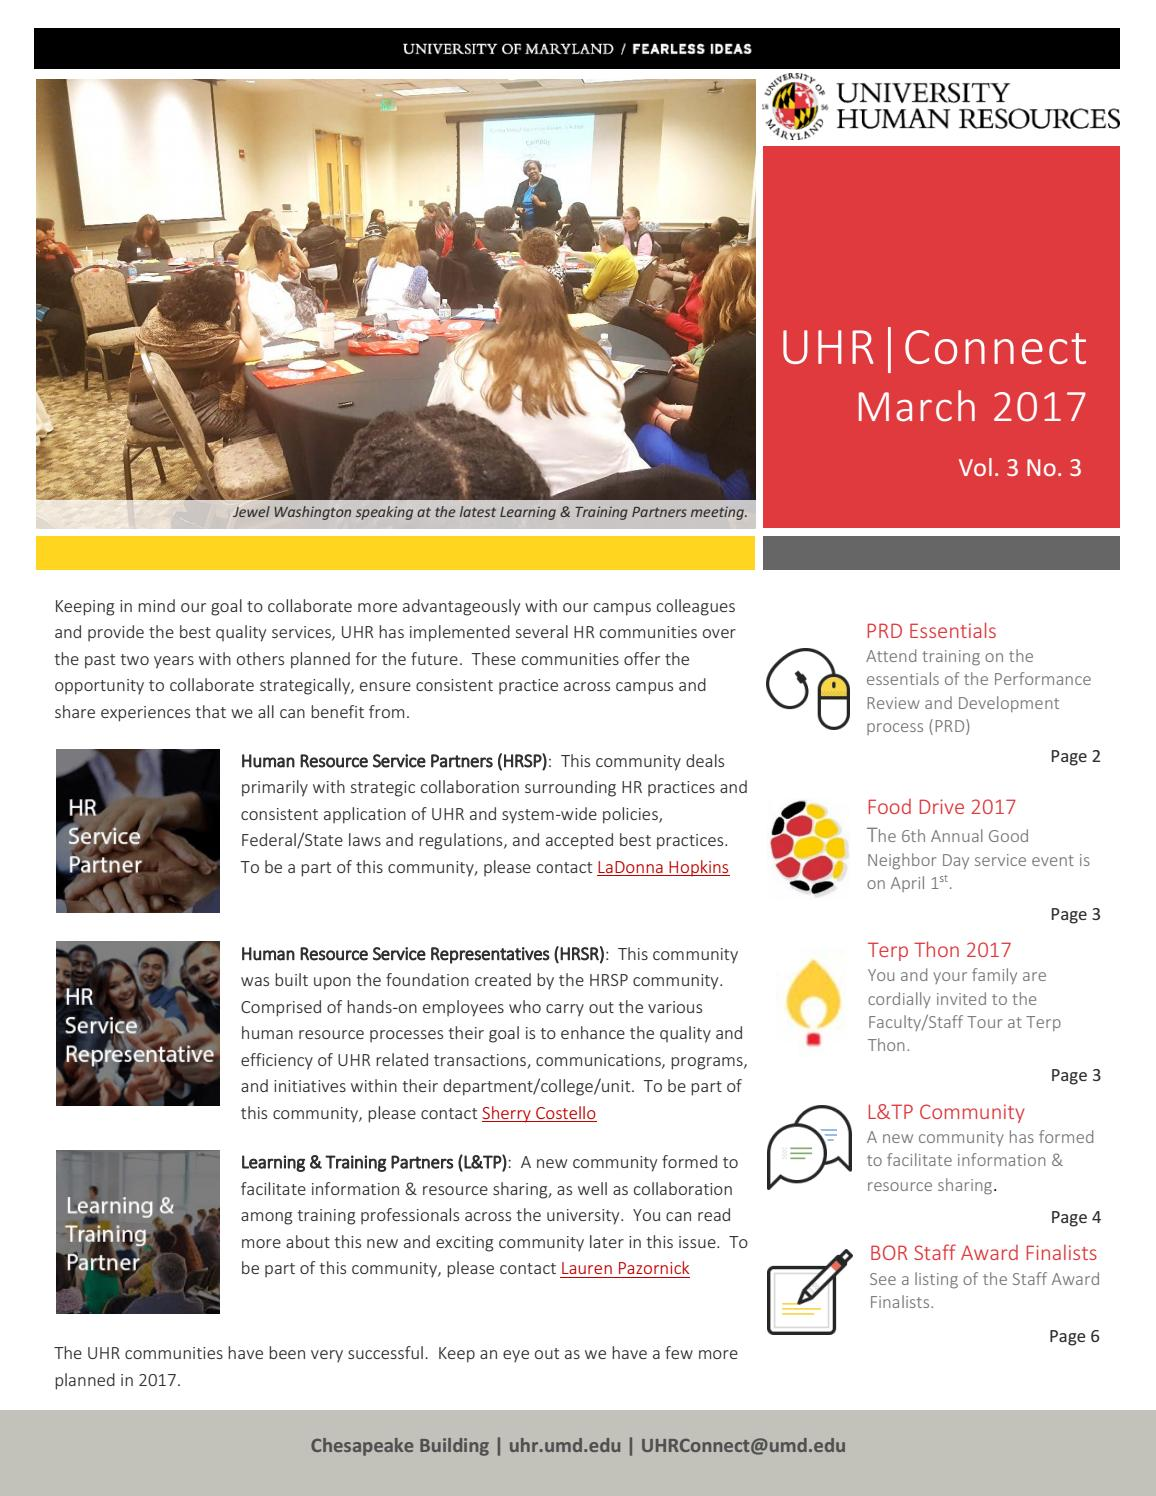 UHR|Connect March 2017 by University Human Resources - issuu